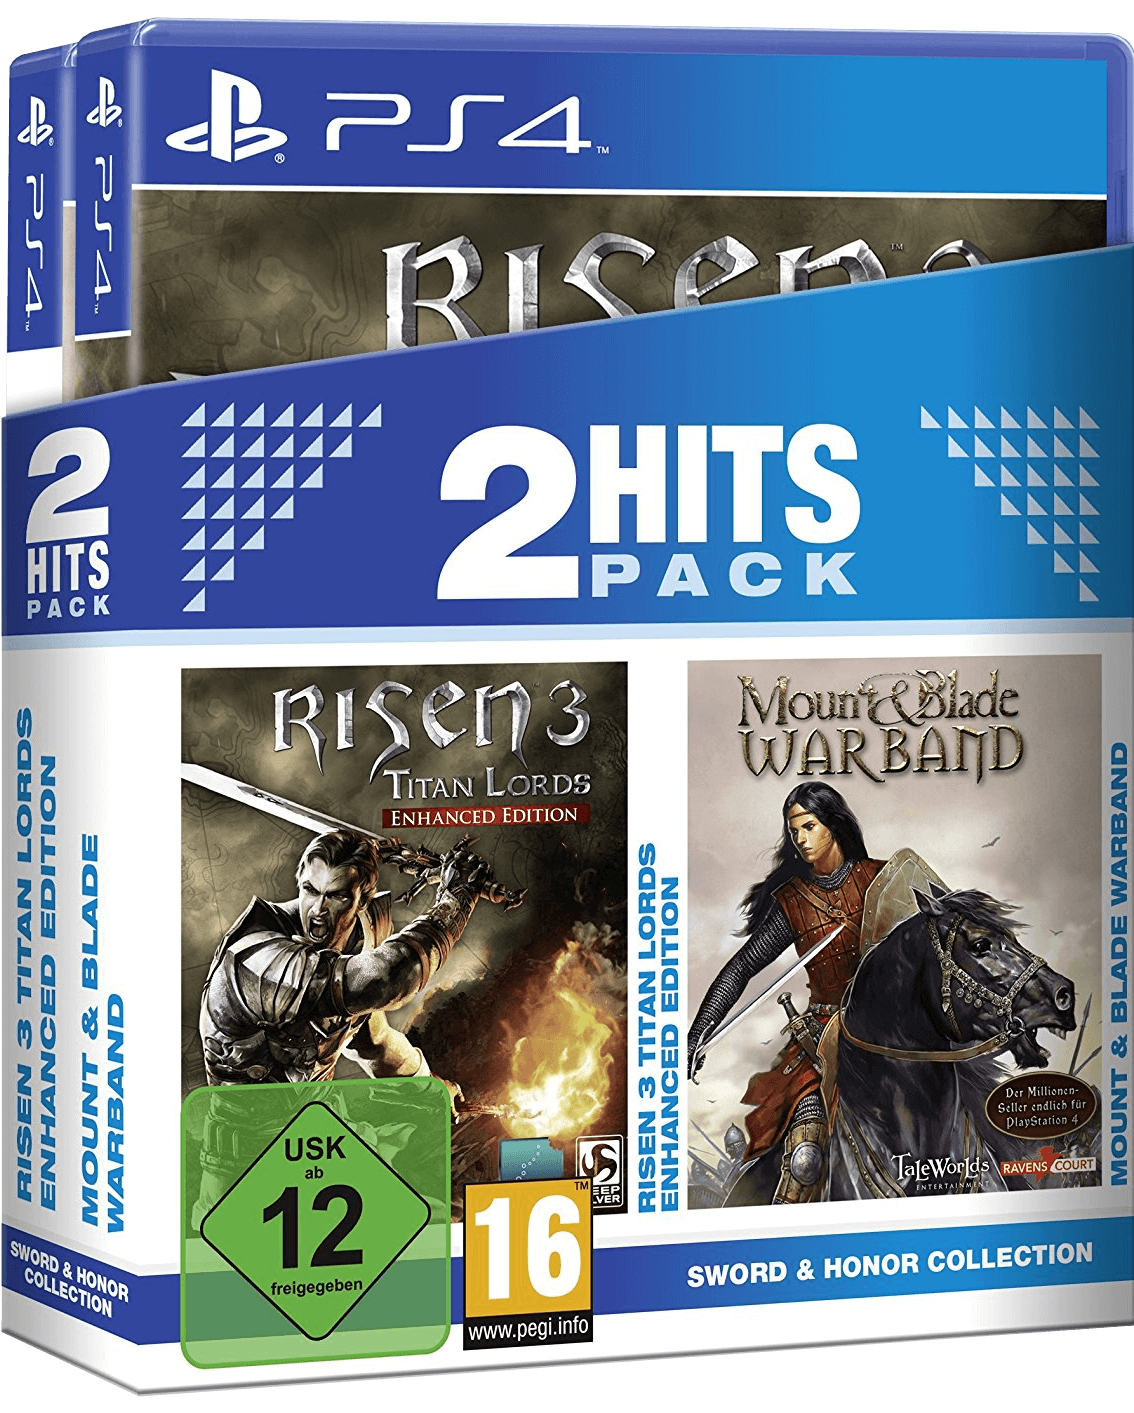 2 Hits Pack - Risen 3 Enhanced Edition + Mount & Blade Warband